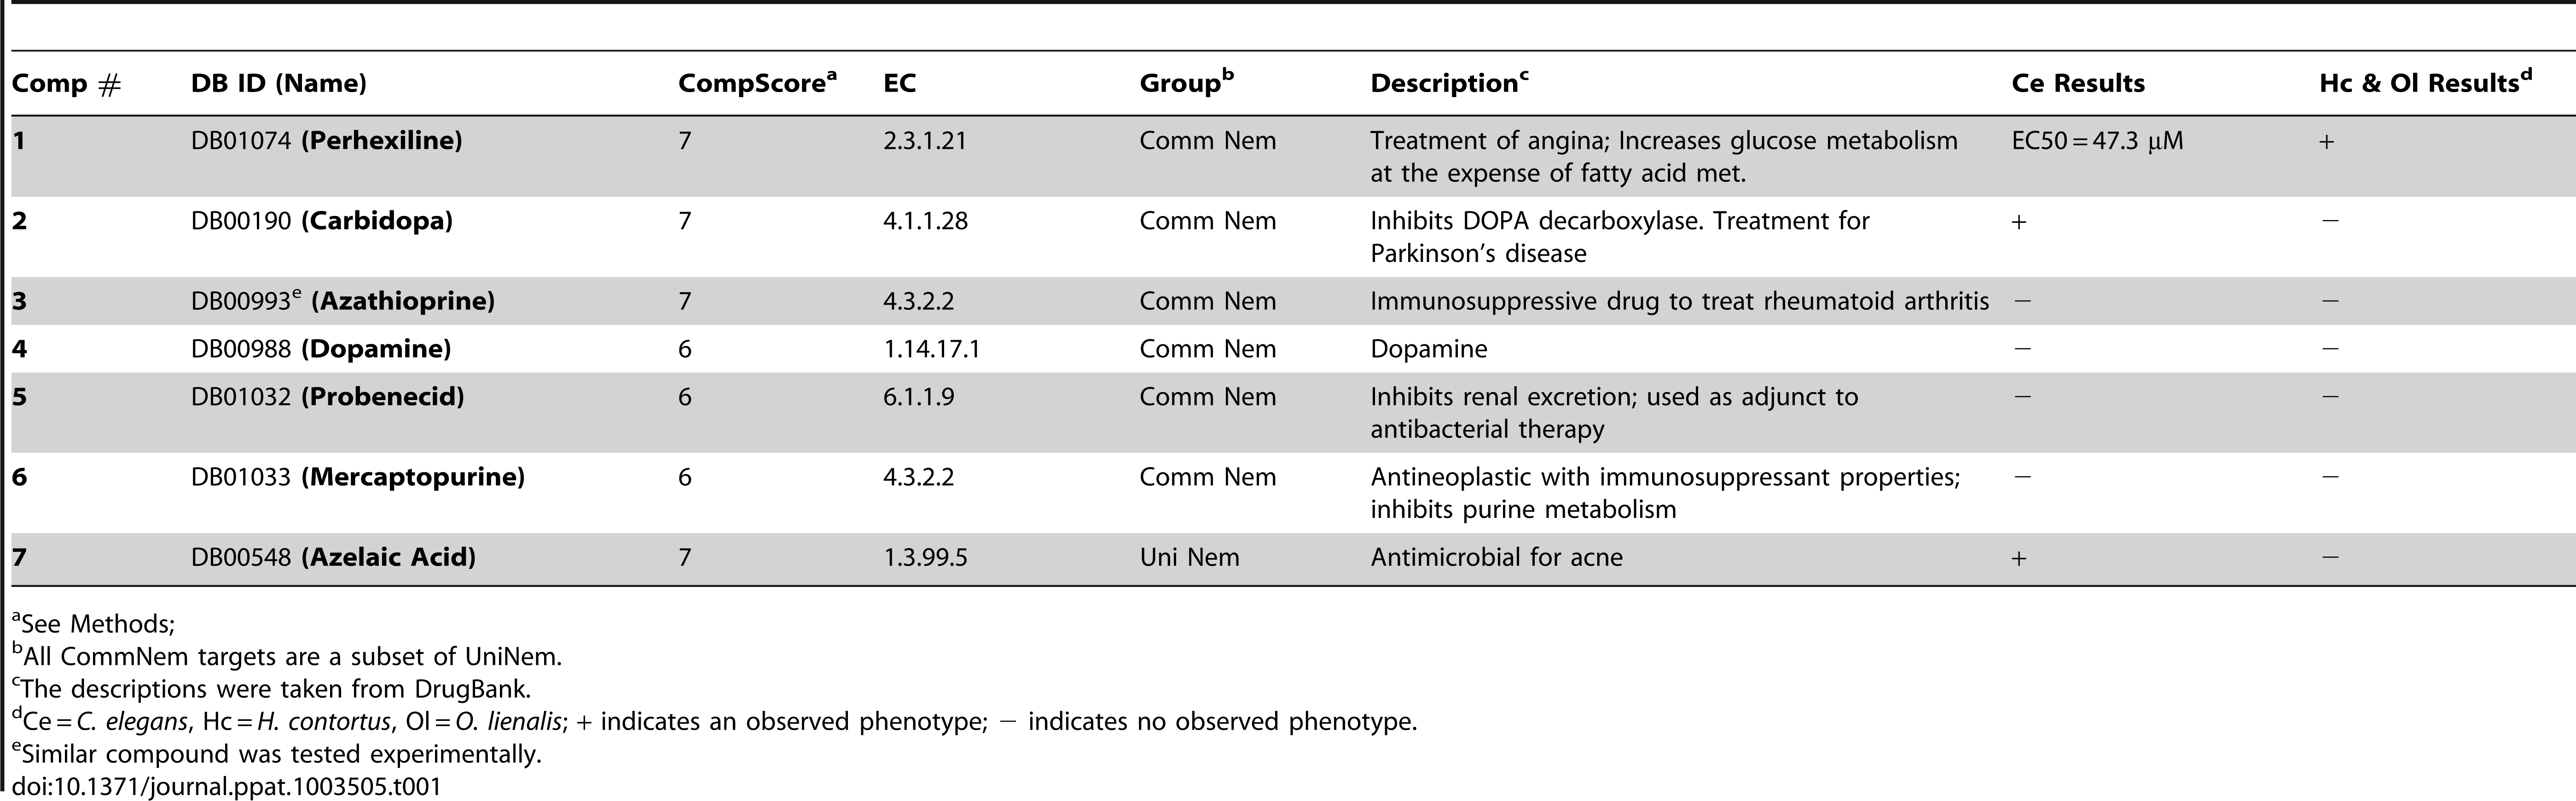 Prioritized list of drug-like compounds from DrugBank that can potentially be repositioned or further optimized for nematodes.